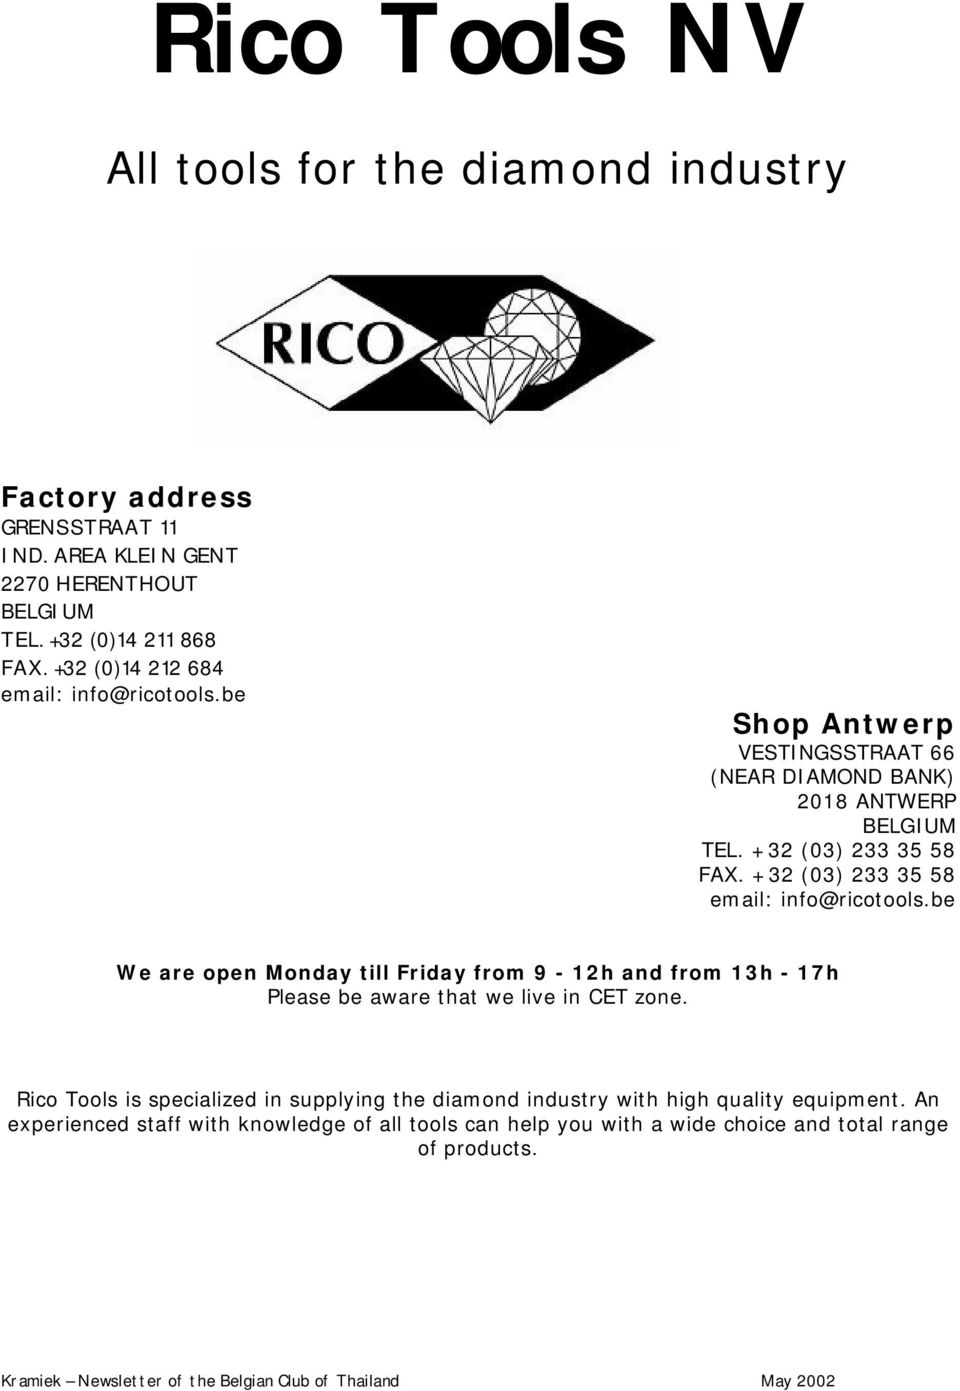 +32 (03) 233 35 58 email: info@ricotools.be We are open Monday till Friday from 9-12h and from 13h - 17h Please be aware that we live in CET zone.